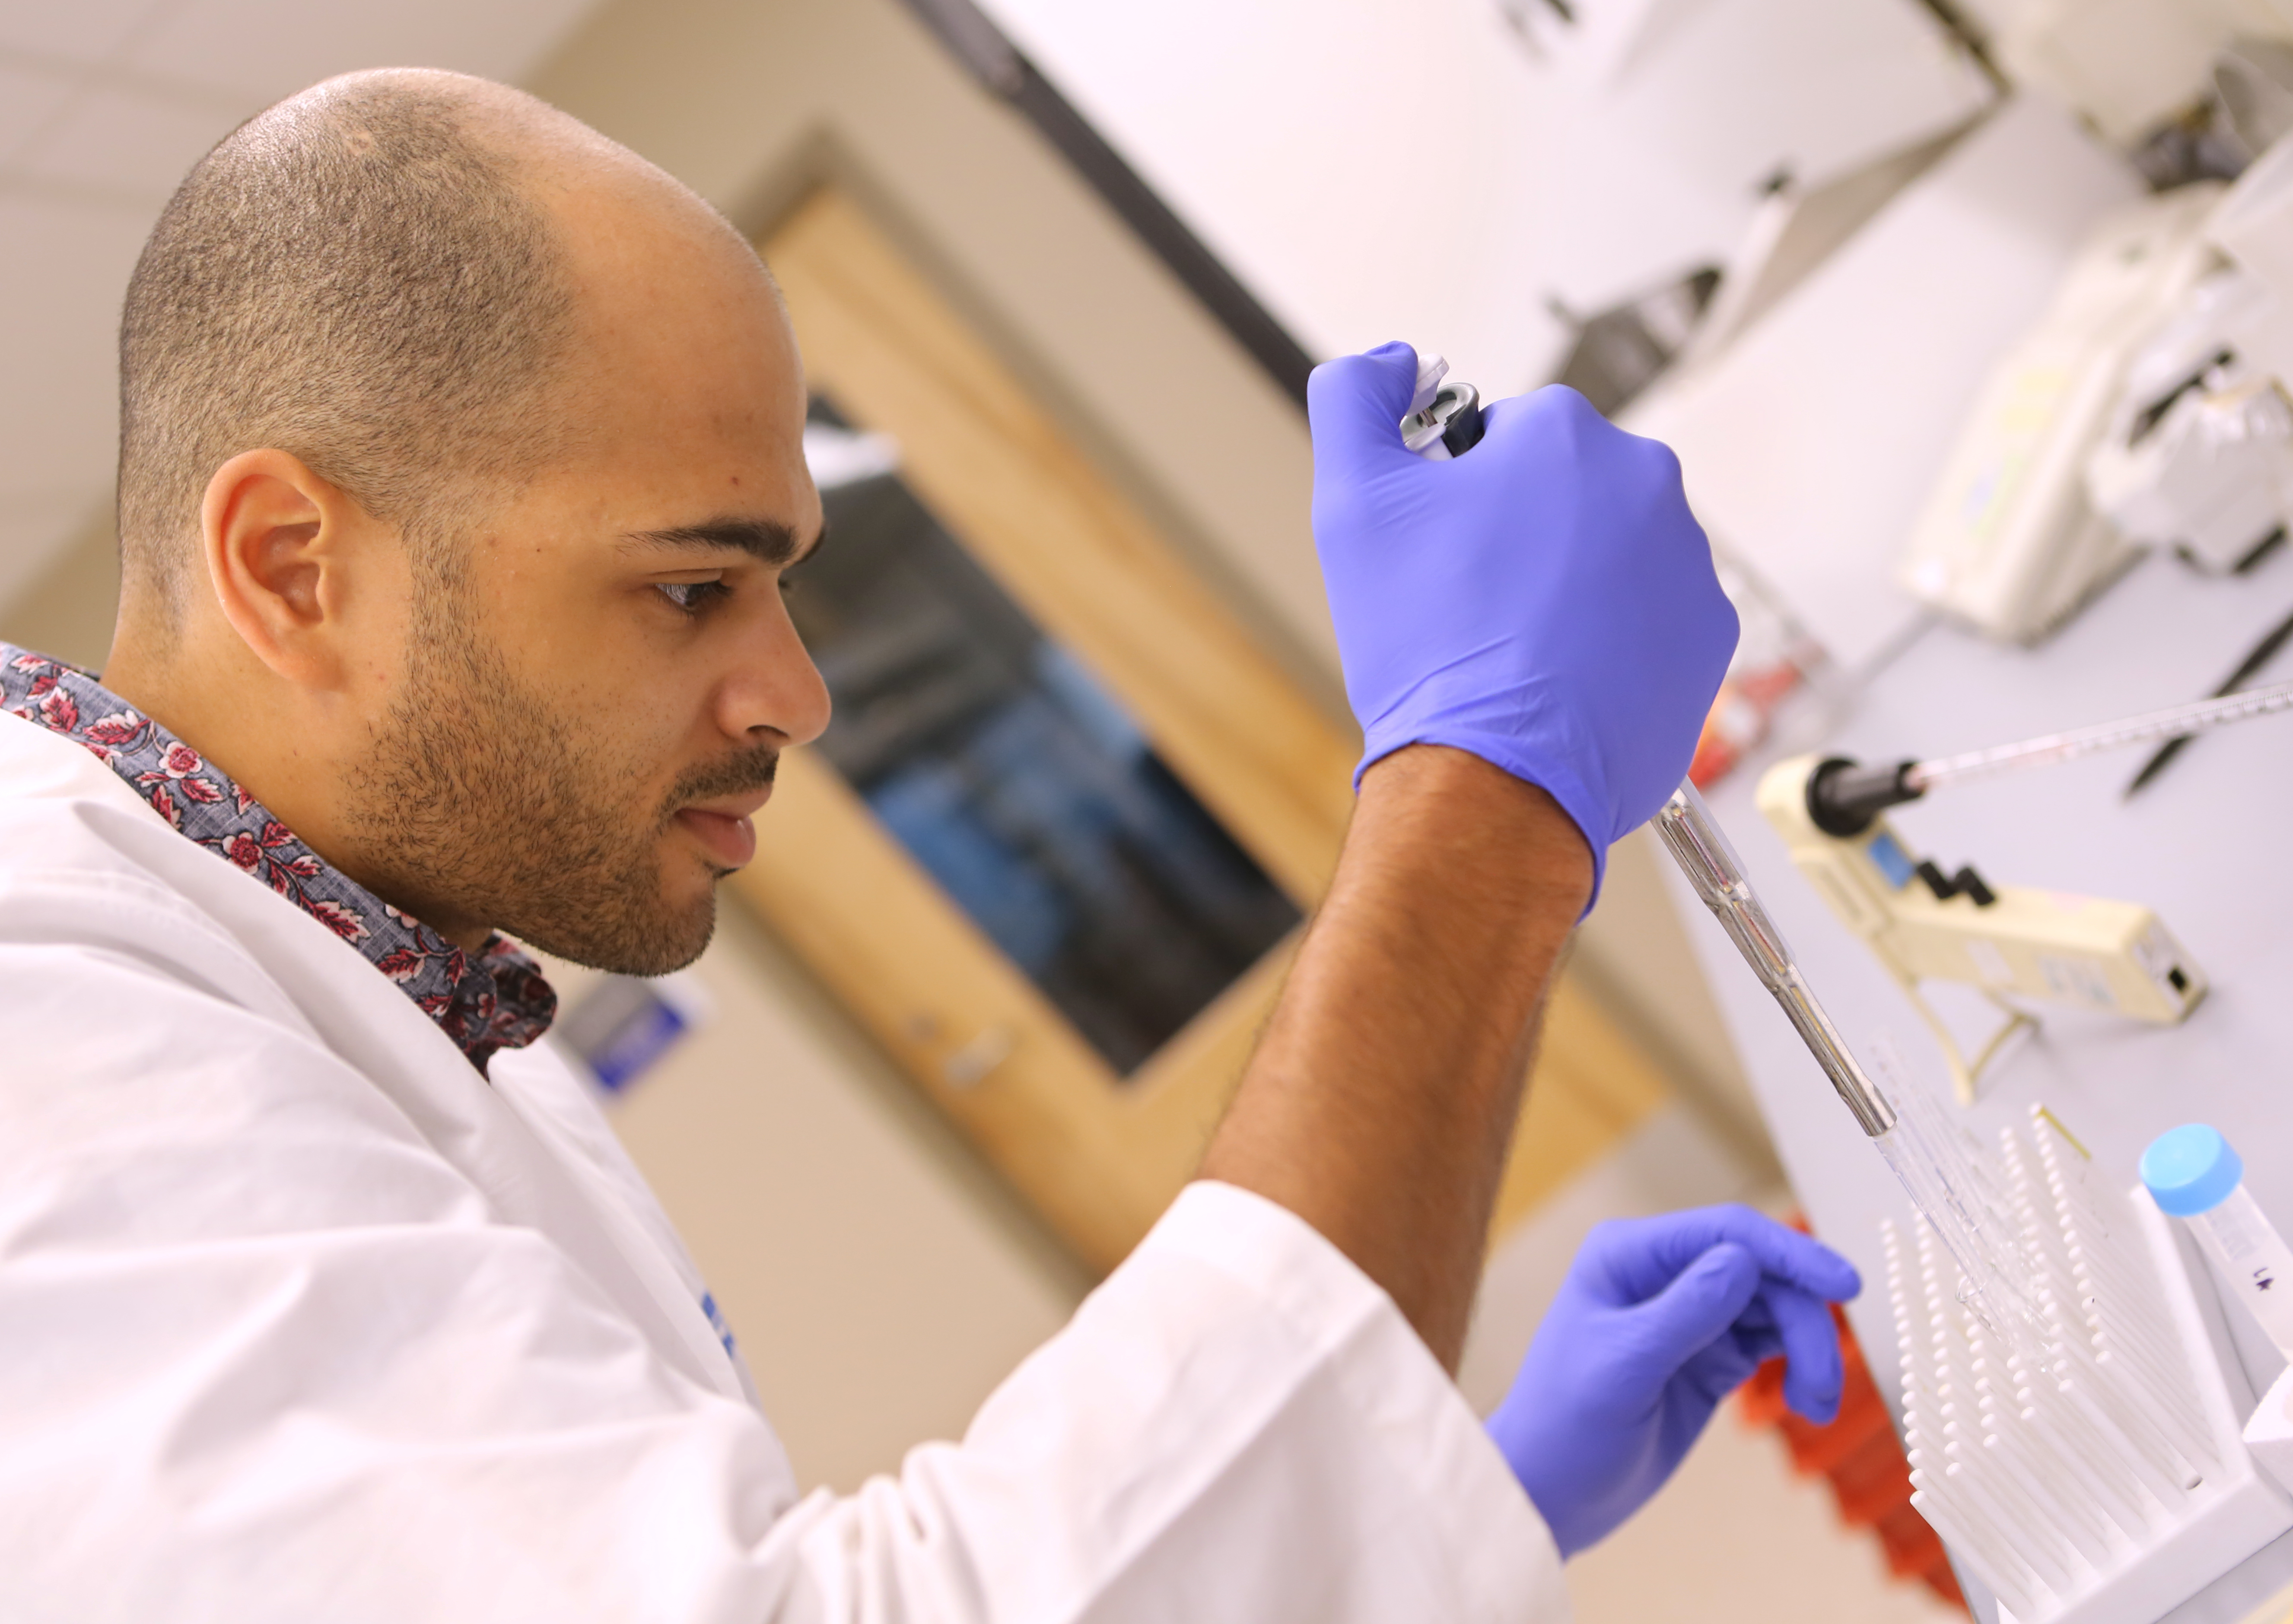 A young man working in a medical research lab inserts liquid into a test tube. He is pushing a plunger with his thumb. The photo is shot at an angle. The man is wearing a lab coat and rubber gloves. Other lab equipment is on the table, and a door is behind him out of focus.